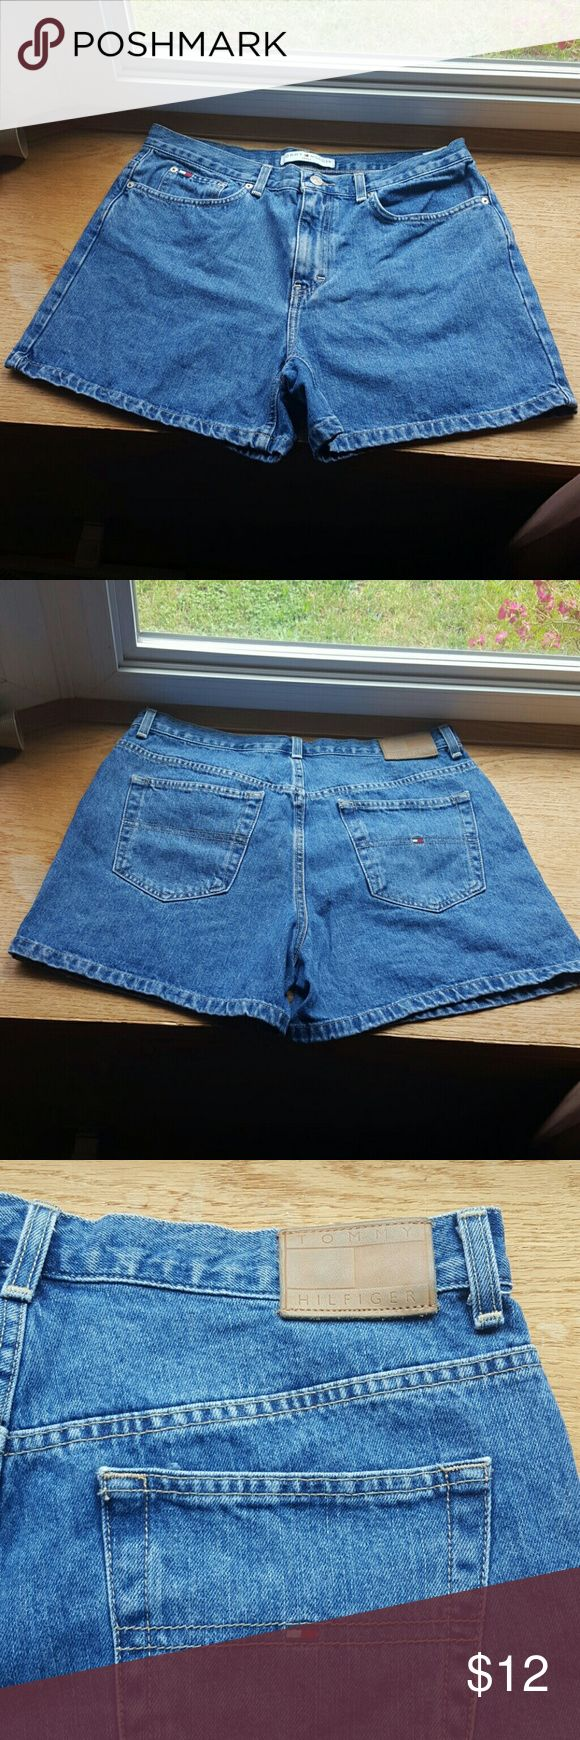 Tommy Hilfiger Jean Shorts Tommy Hilfiger Women's Jean Shorts Non smoking home  No trades Tommy Hilfiger Shorts Jean Shorts